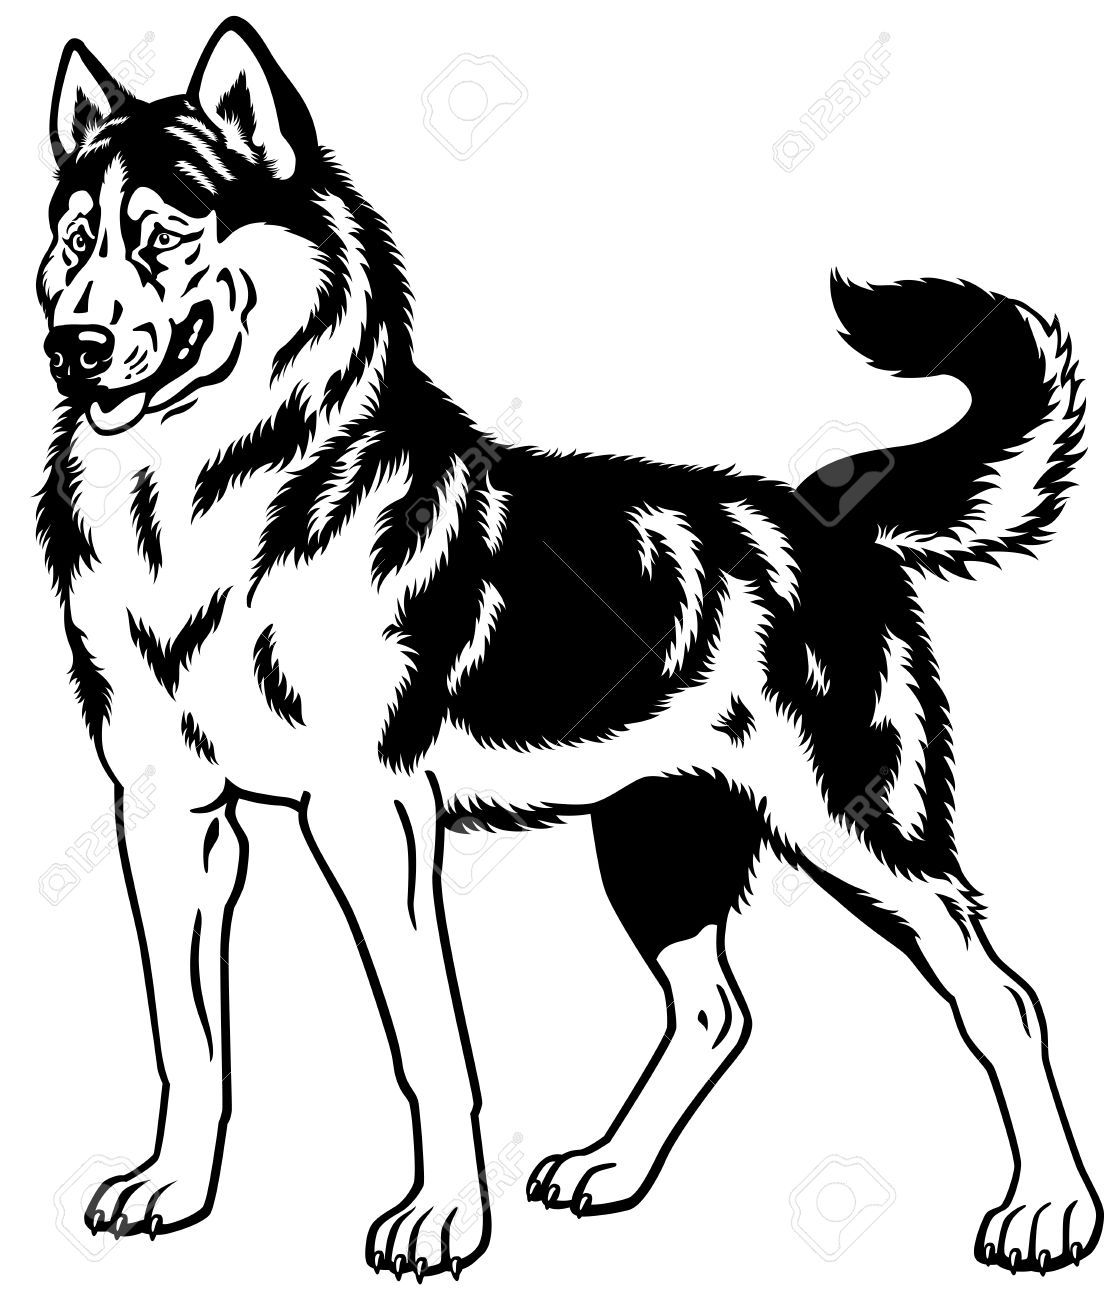 husky face coloring pages free cliparts husky puppy download free clip art free coloring face husky pages